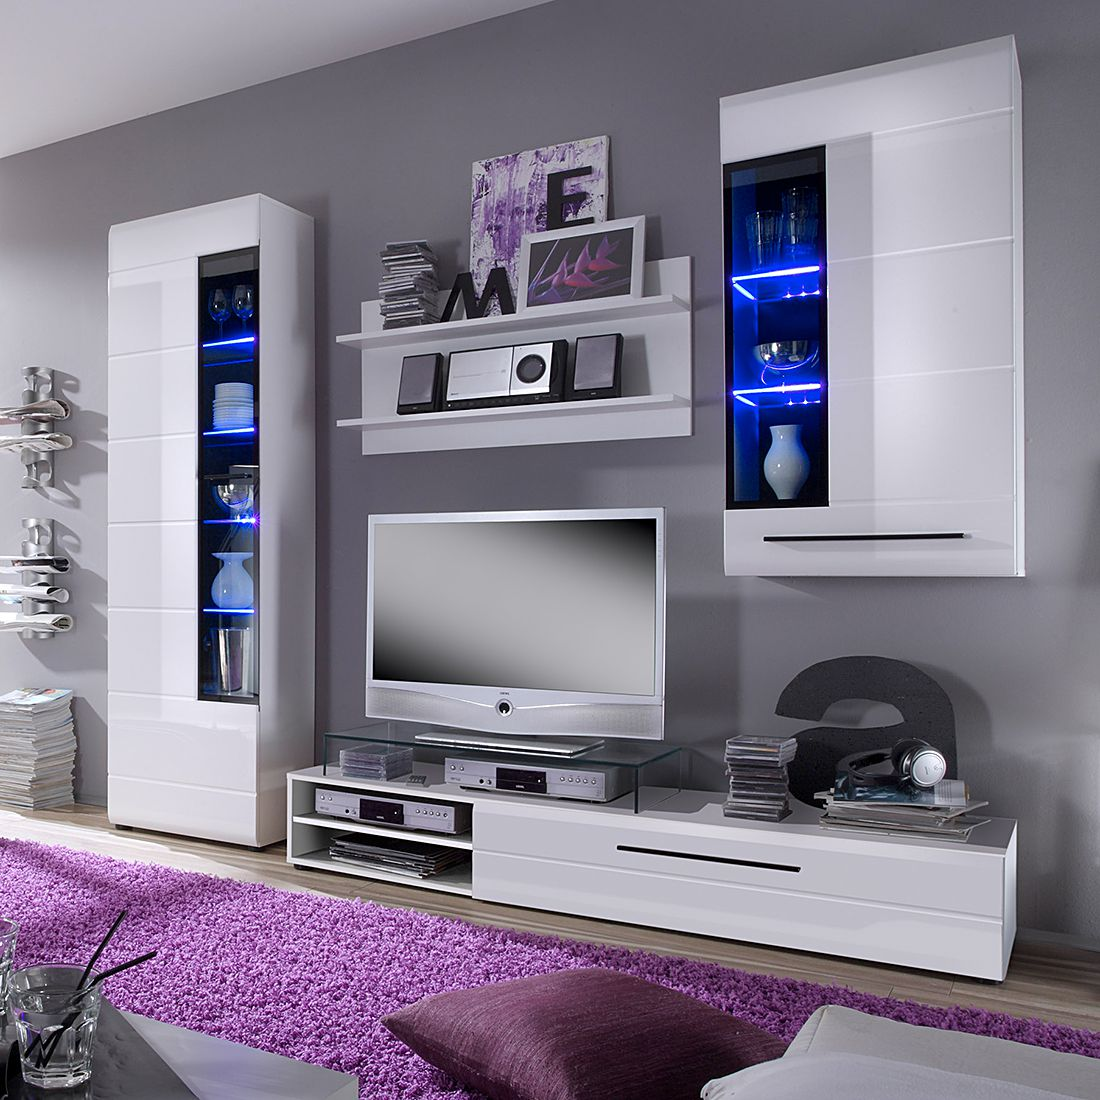 meuble tv avec vitrine avec vitrine trouvez avec vitrine parmis nos meubles de television. Black Bedroom Furniture Sets. Home Design Ideas